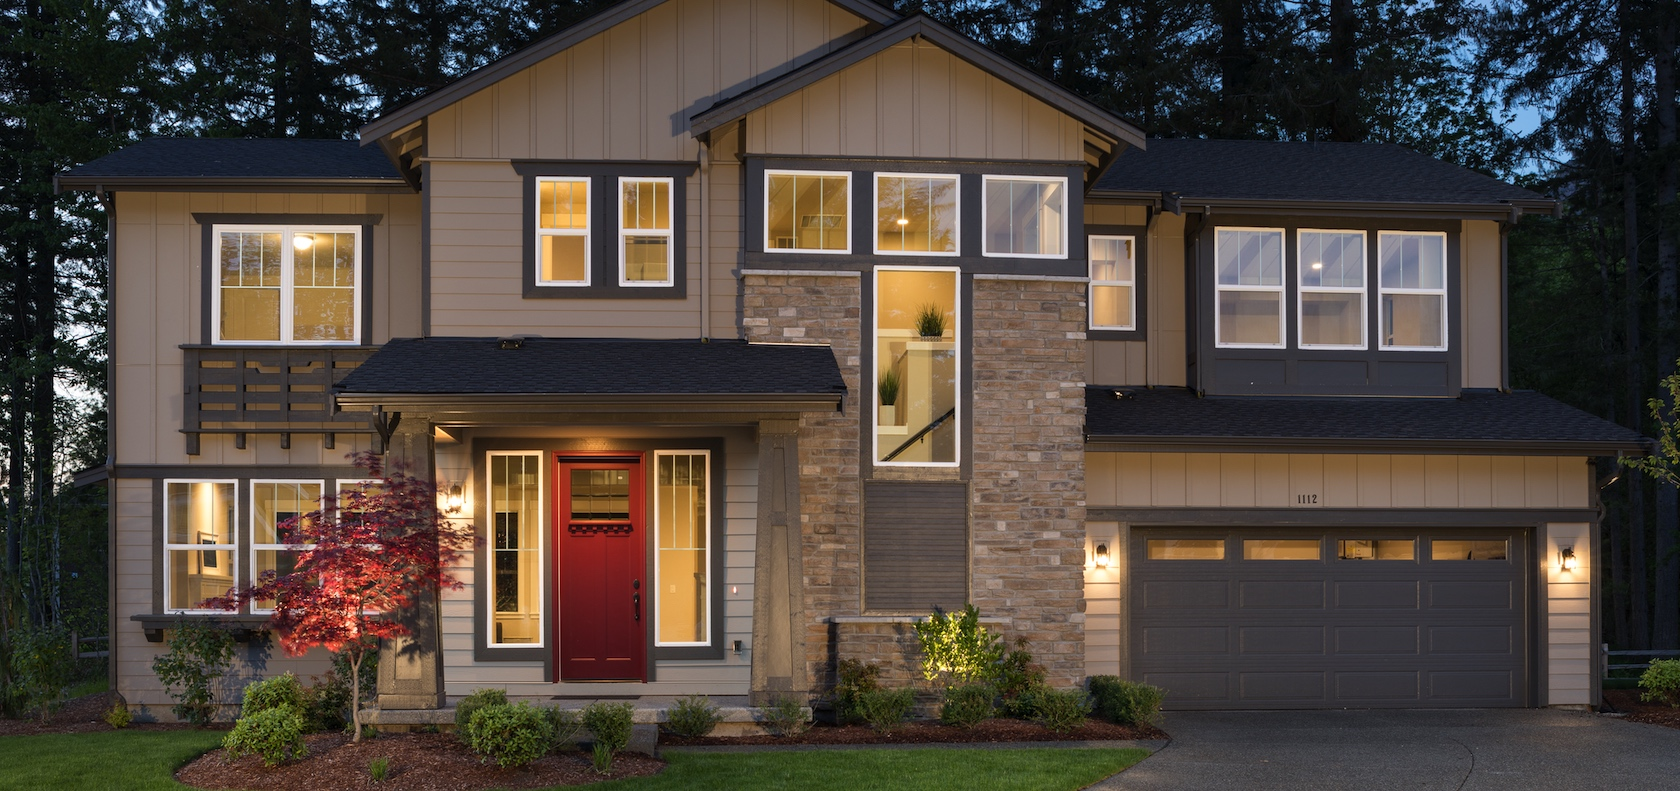 Suburban new construction home with a red front door.